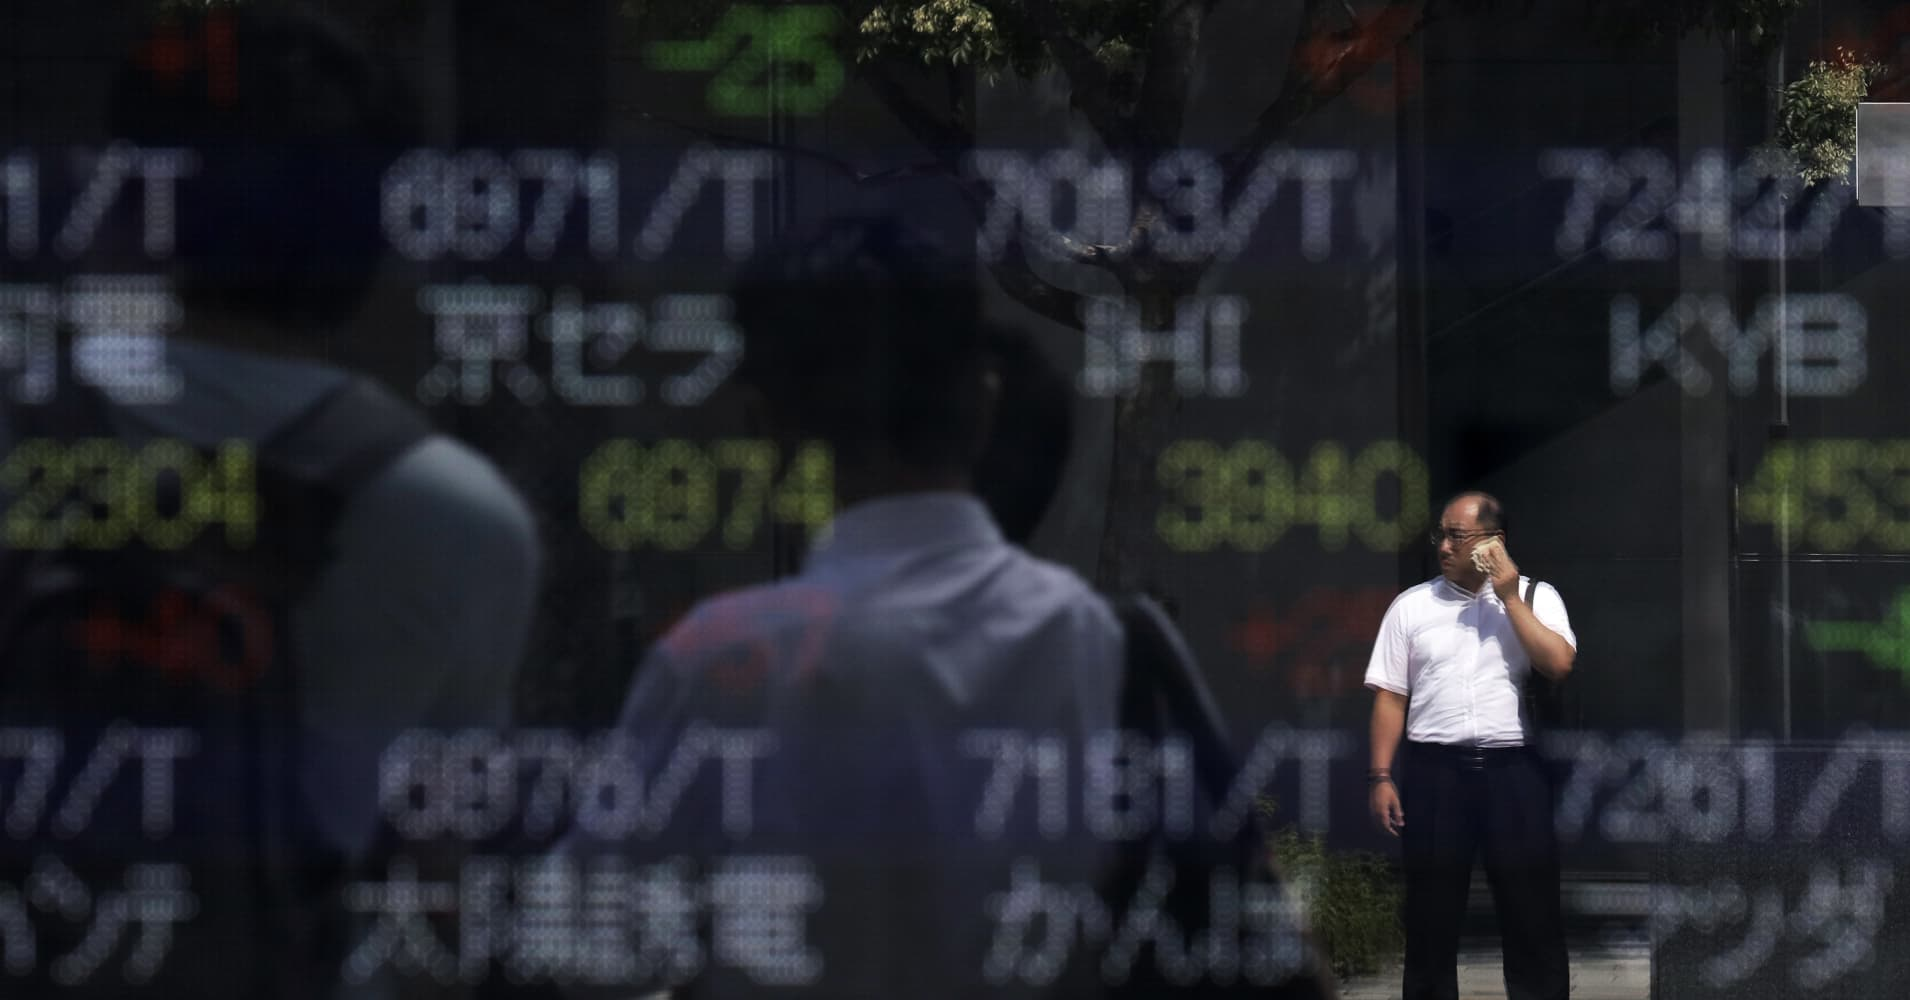 Asia stocks crumble: Shanghai topples more than 5%, Nikkei declines nearly 4%